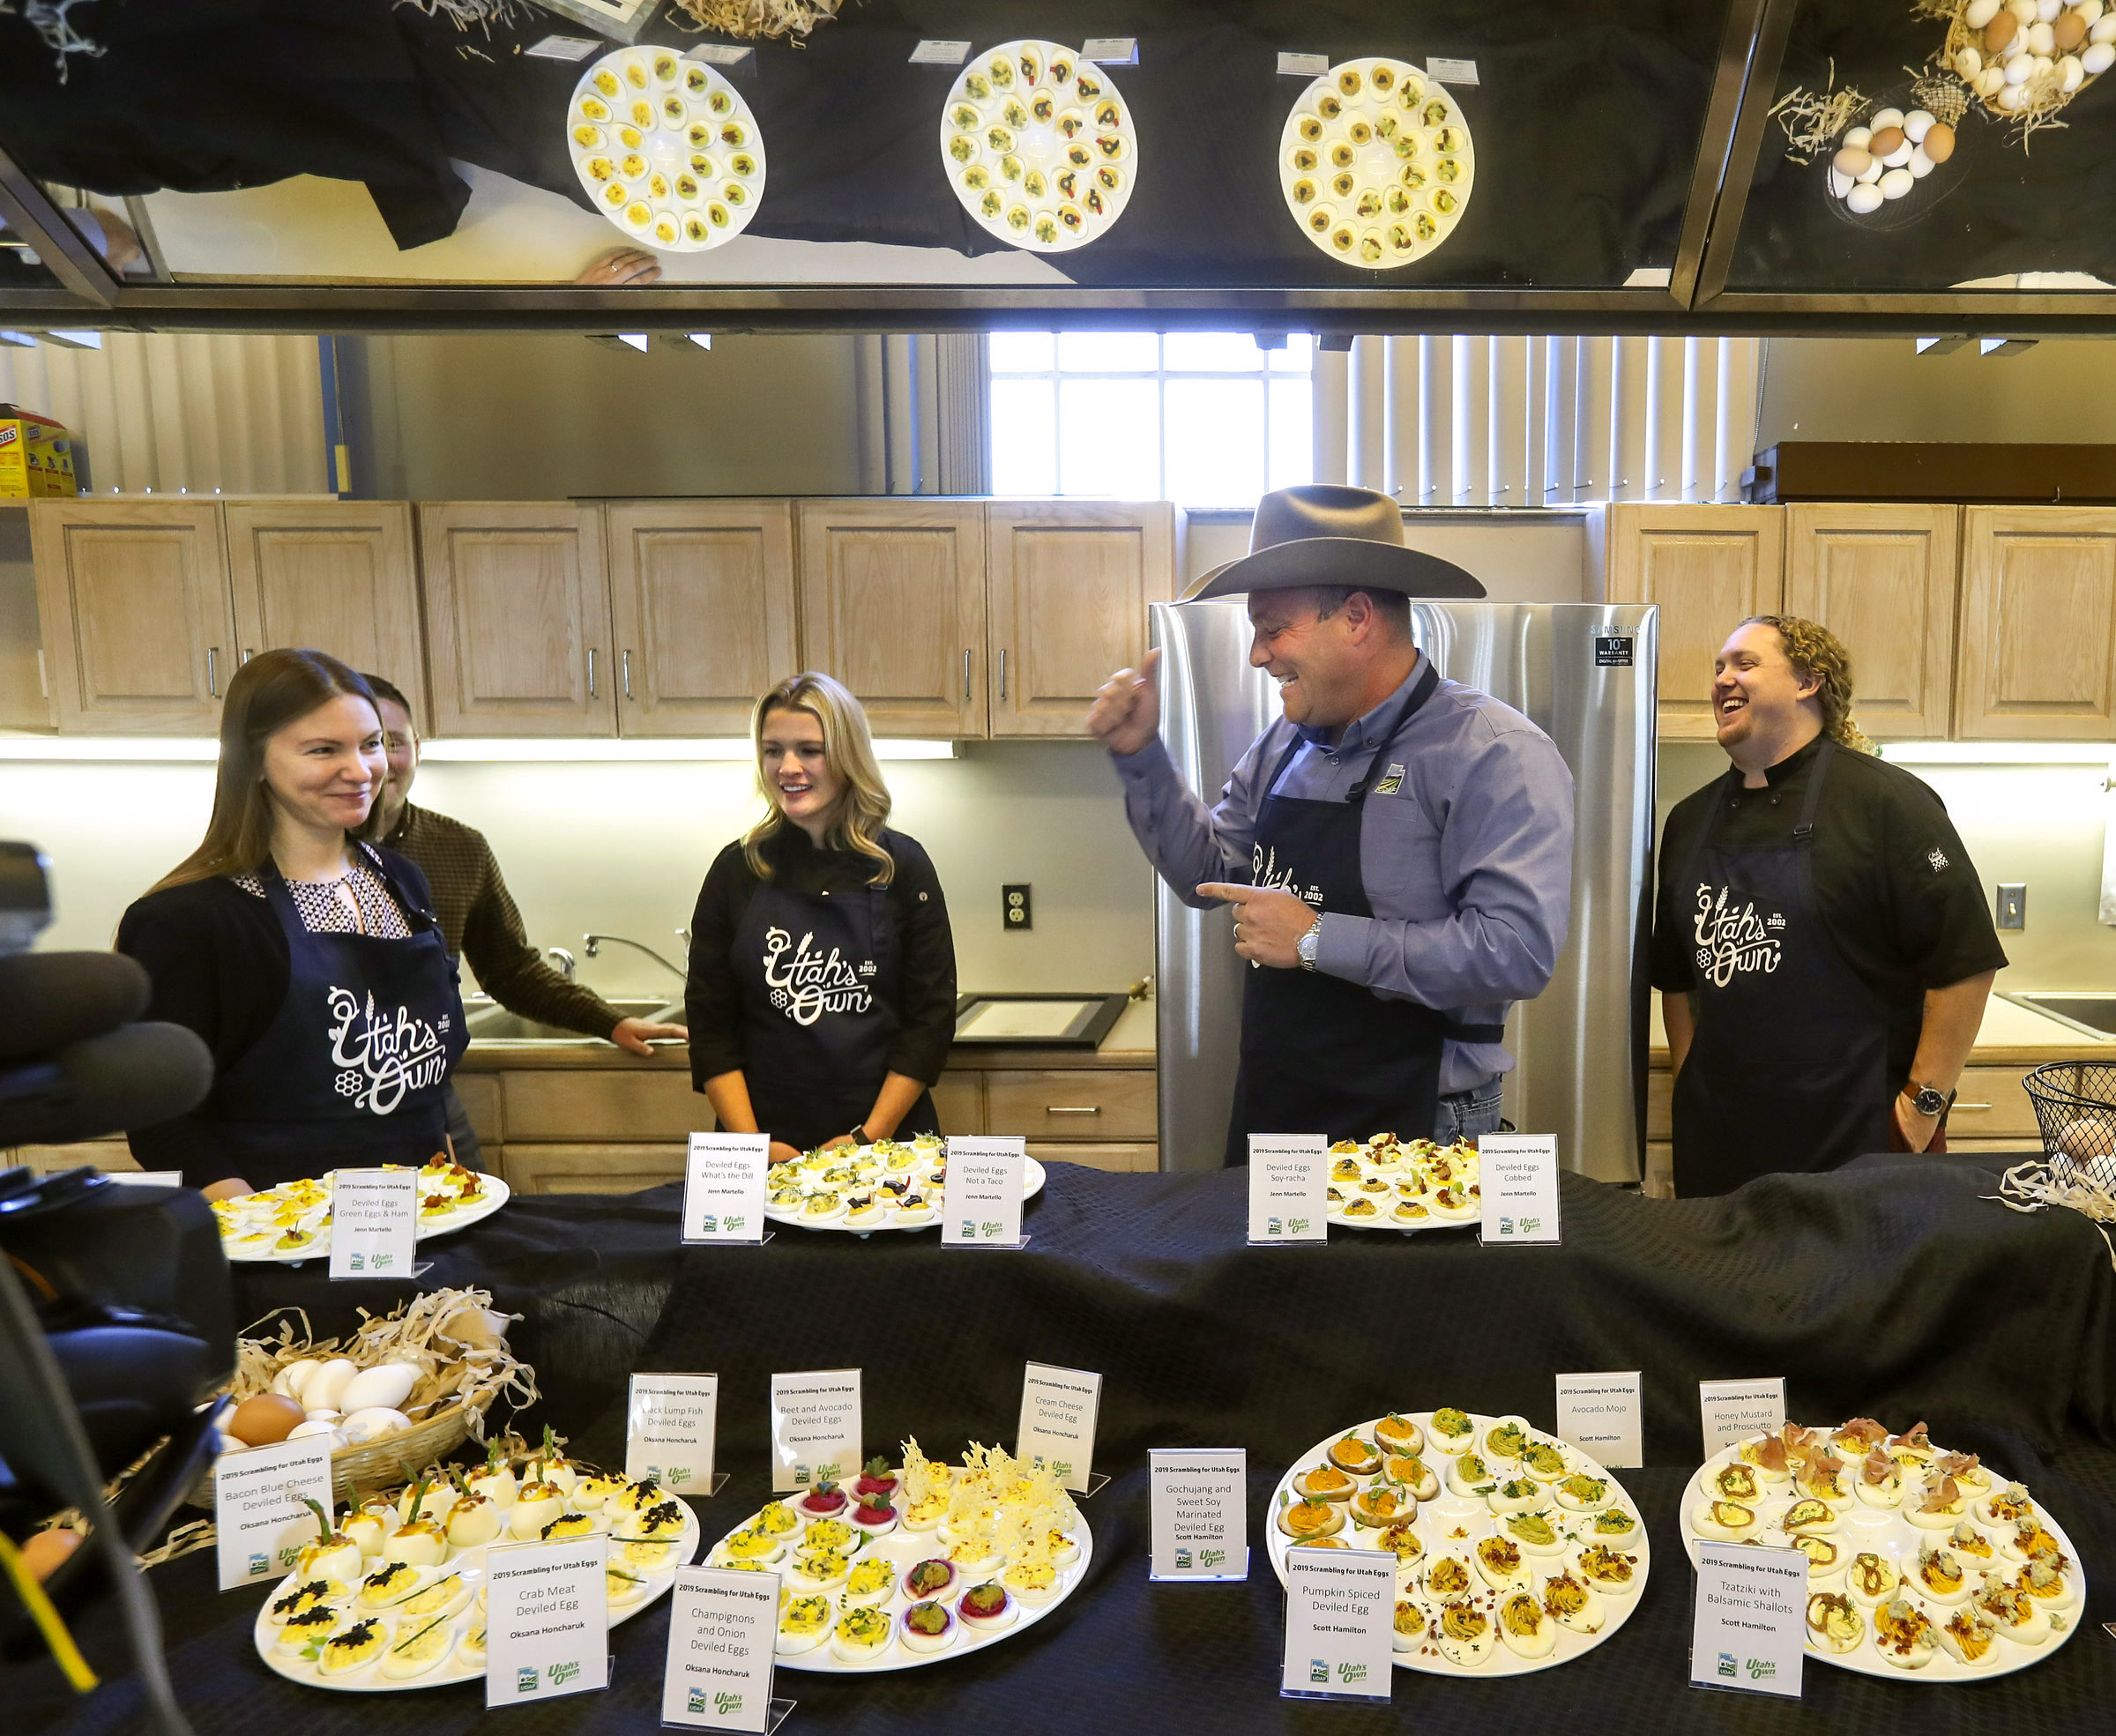 Kerry Gibson, commissioner of the Utah Department of Agriculture and Food, second from right, talks with local chefs Oksana Honcharuk, Jenn Martello and Scott Hamilton about their deviled egg recipes during a press conference promoting Utah Egg Producer Day at the Utah State Fairpark in Salt Lake City on Friday, Nov. 1, 2019. The event closely coincides with National Deviled Egg Day which is Nov. 2, 2019. Egg production has grown over the years and contributes an estimated $75 million to Utah's economy.